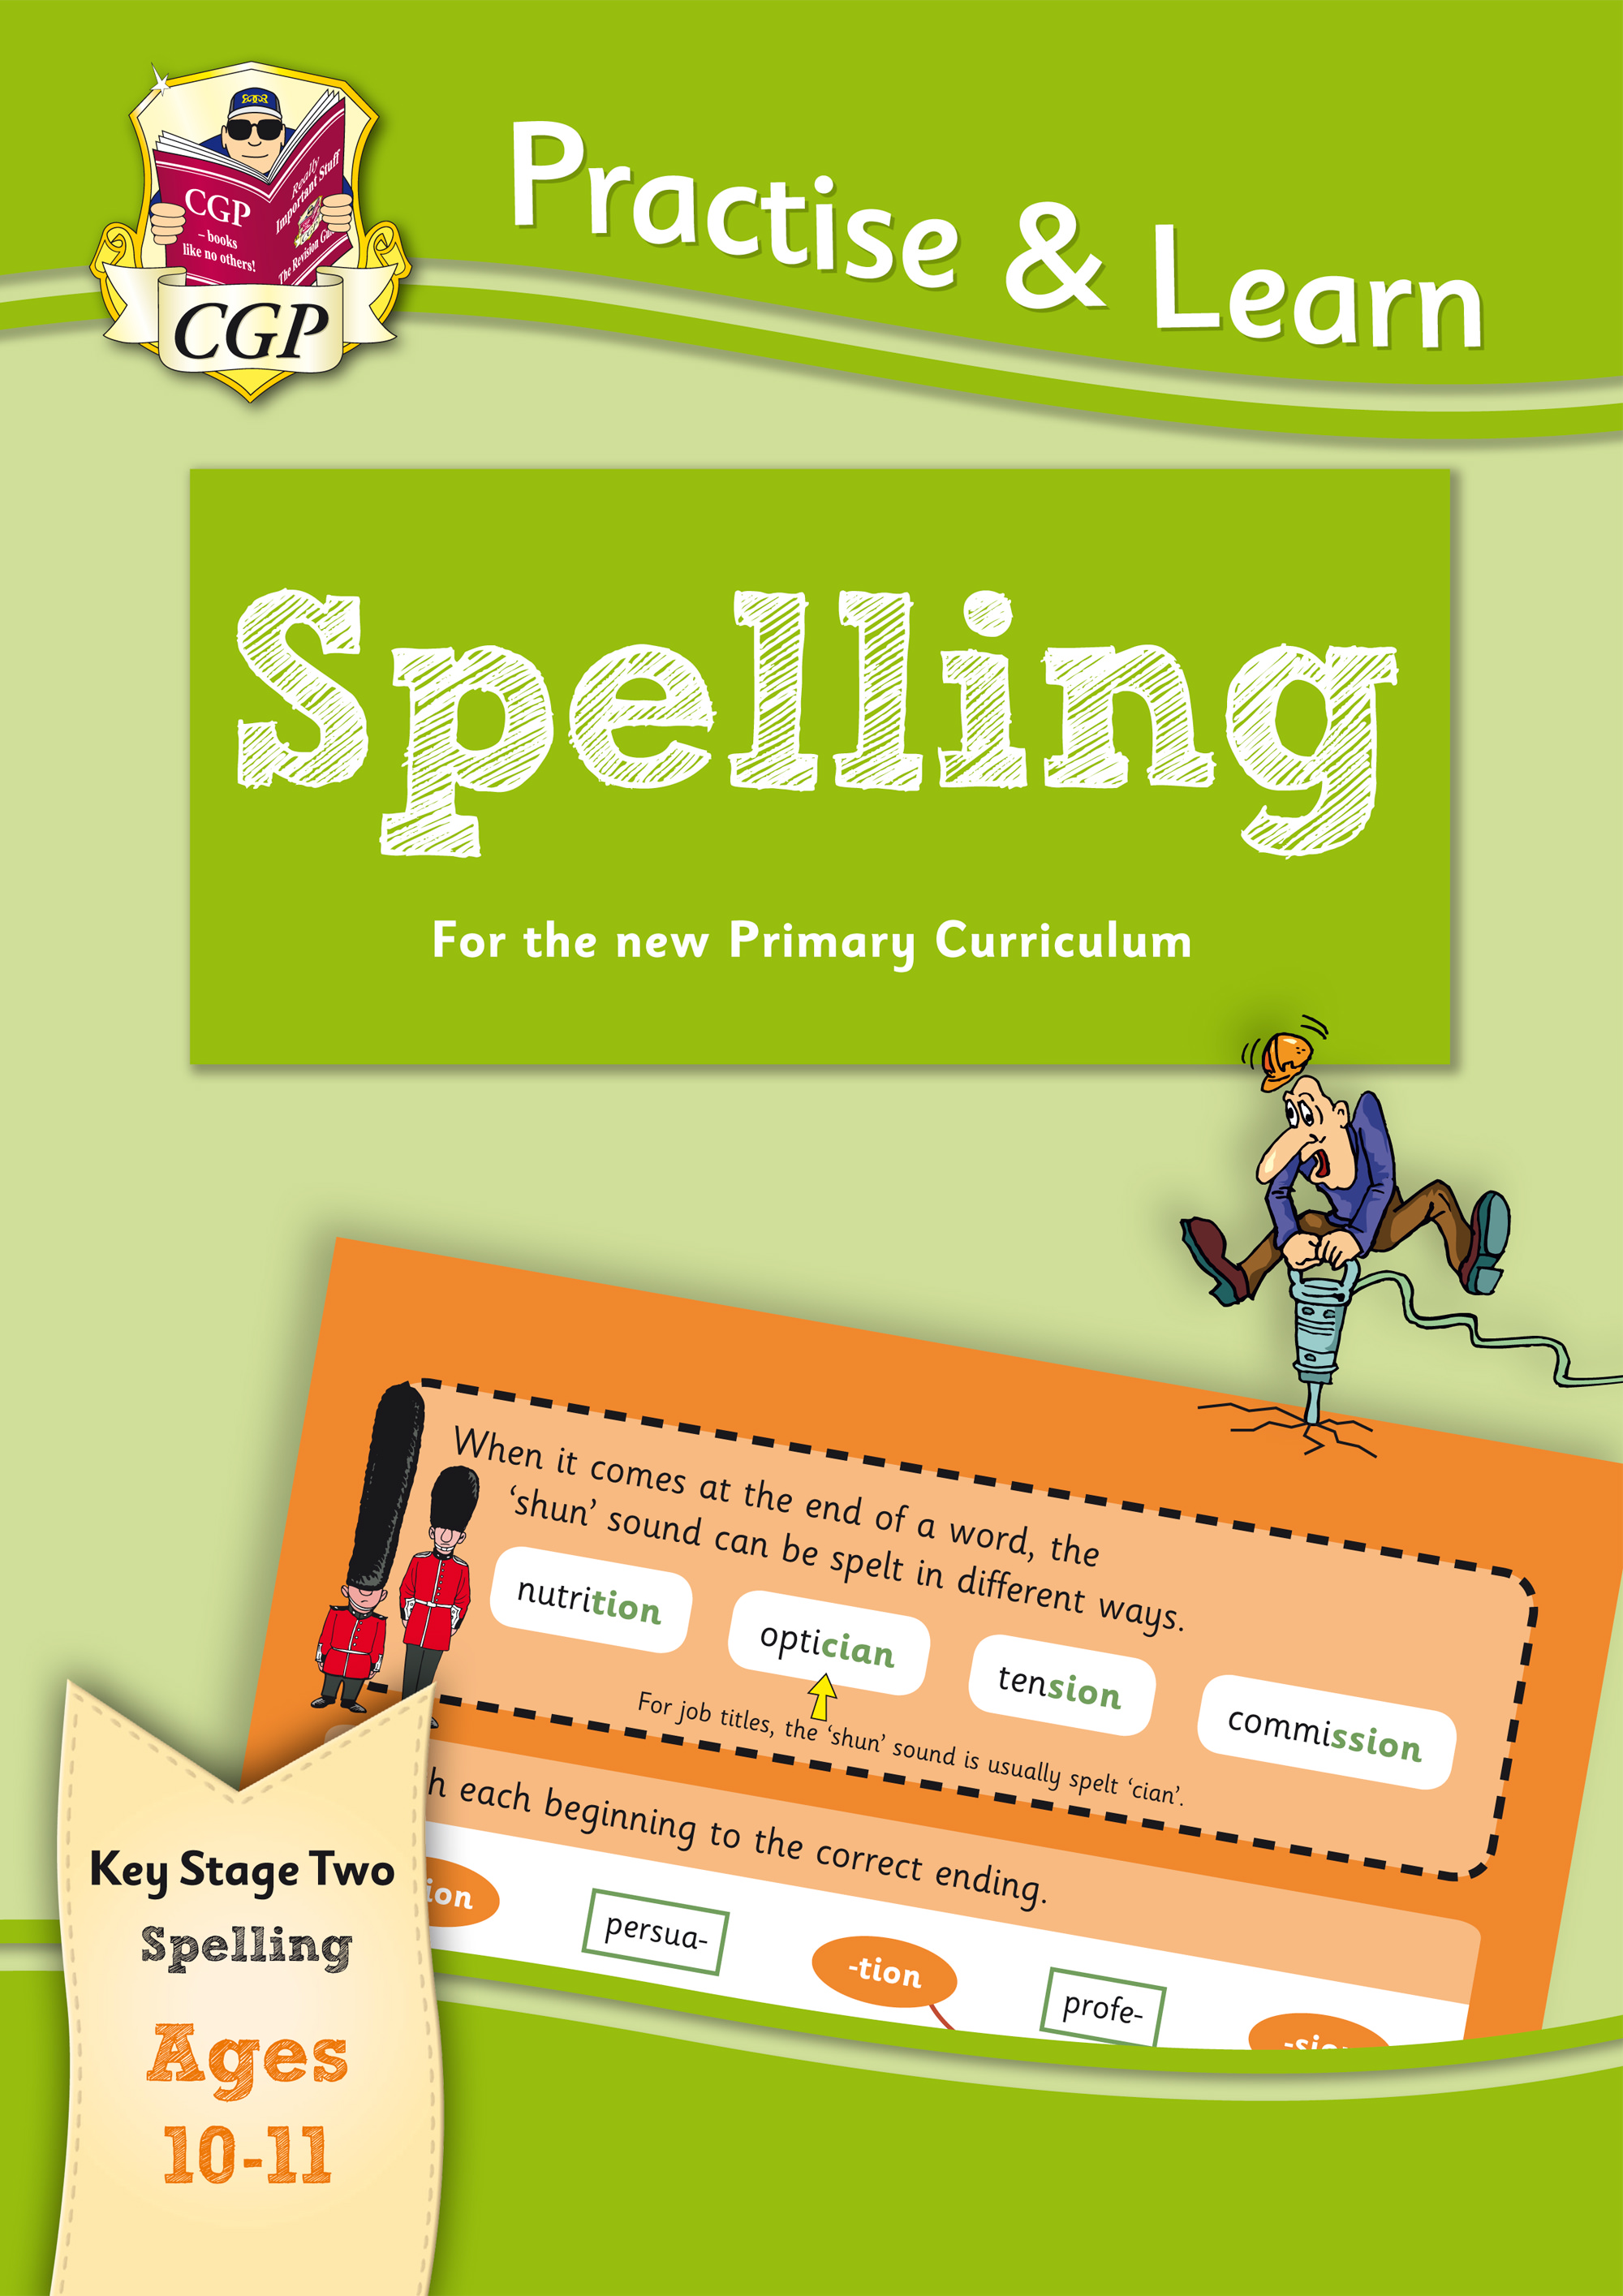 EP6S22 - New Curriculum Practise & Learn: Spelling for Ages 10-11